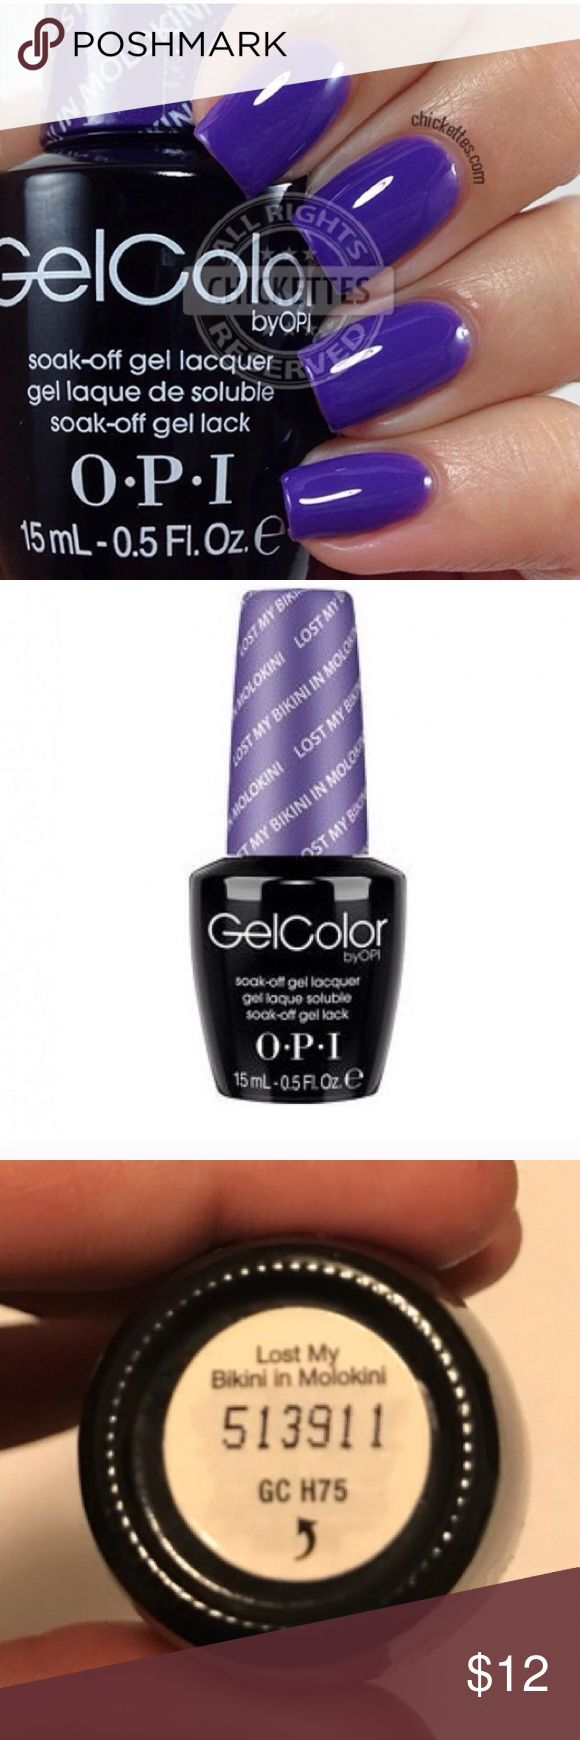 OPI GEL POLISH OPI gel polish.  Lost My Bikini In Molokini . UV/LED LIGHT REQUIRED. Full bottle, maybe used once... I have a duplicate so I'm selling this one OPI Other